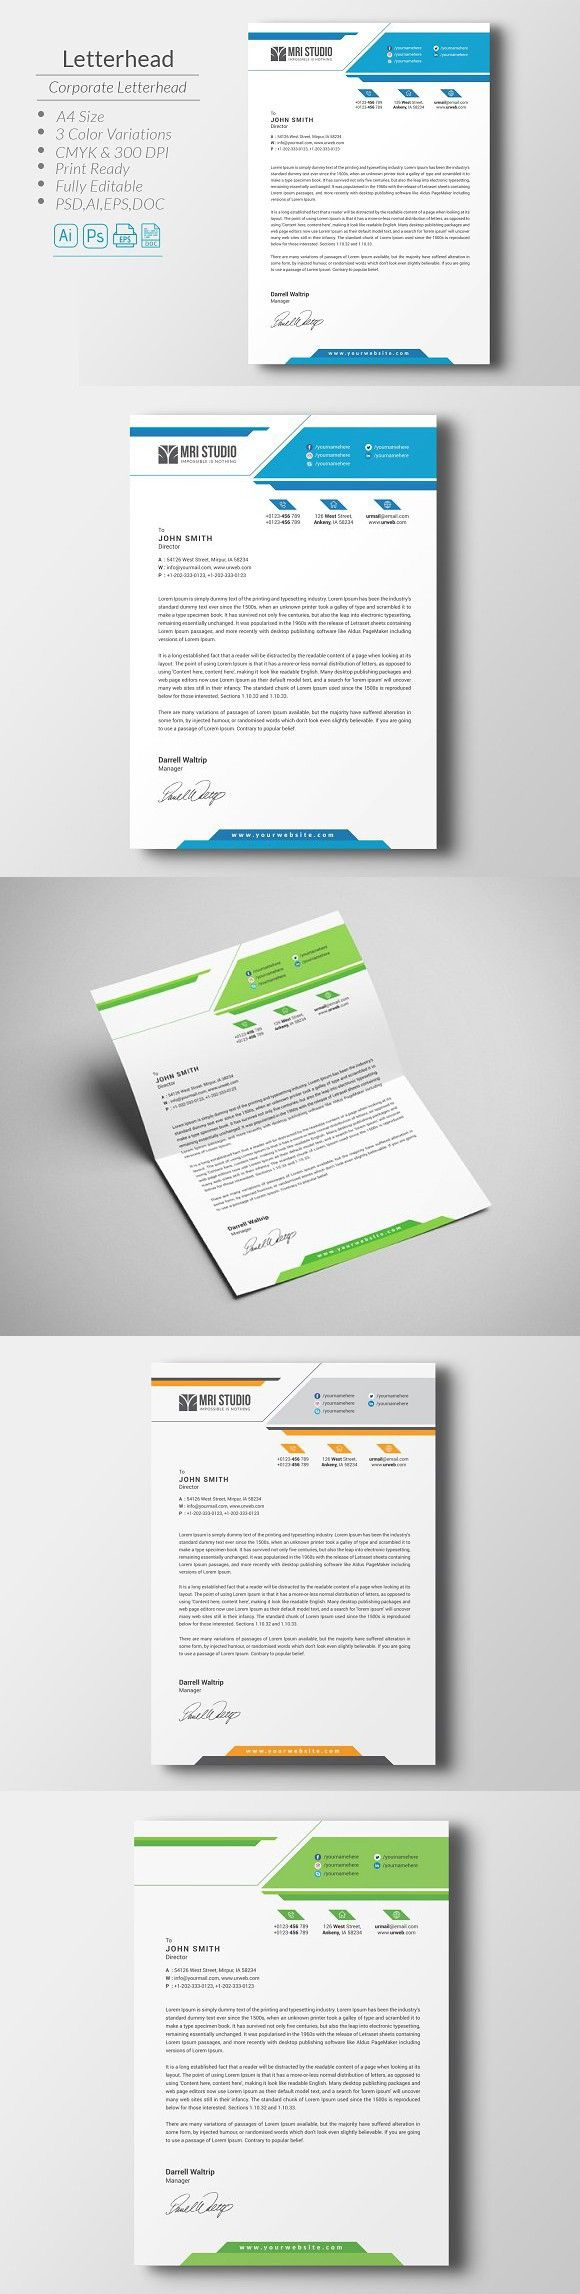 Corporate Letterhead. Stationery Templates